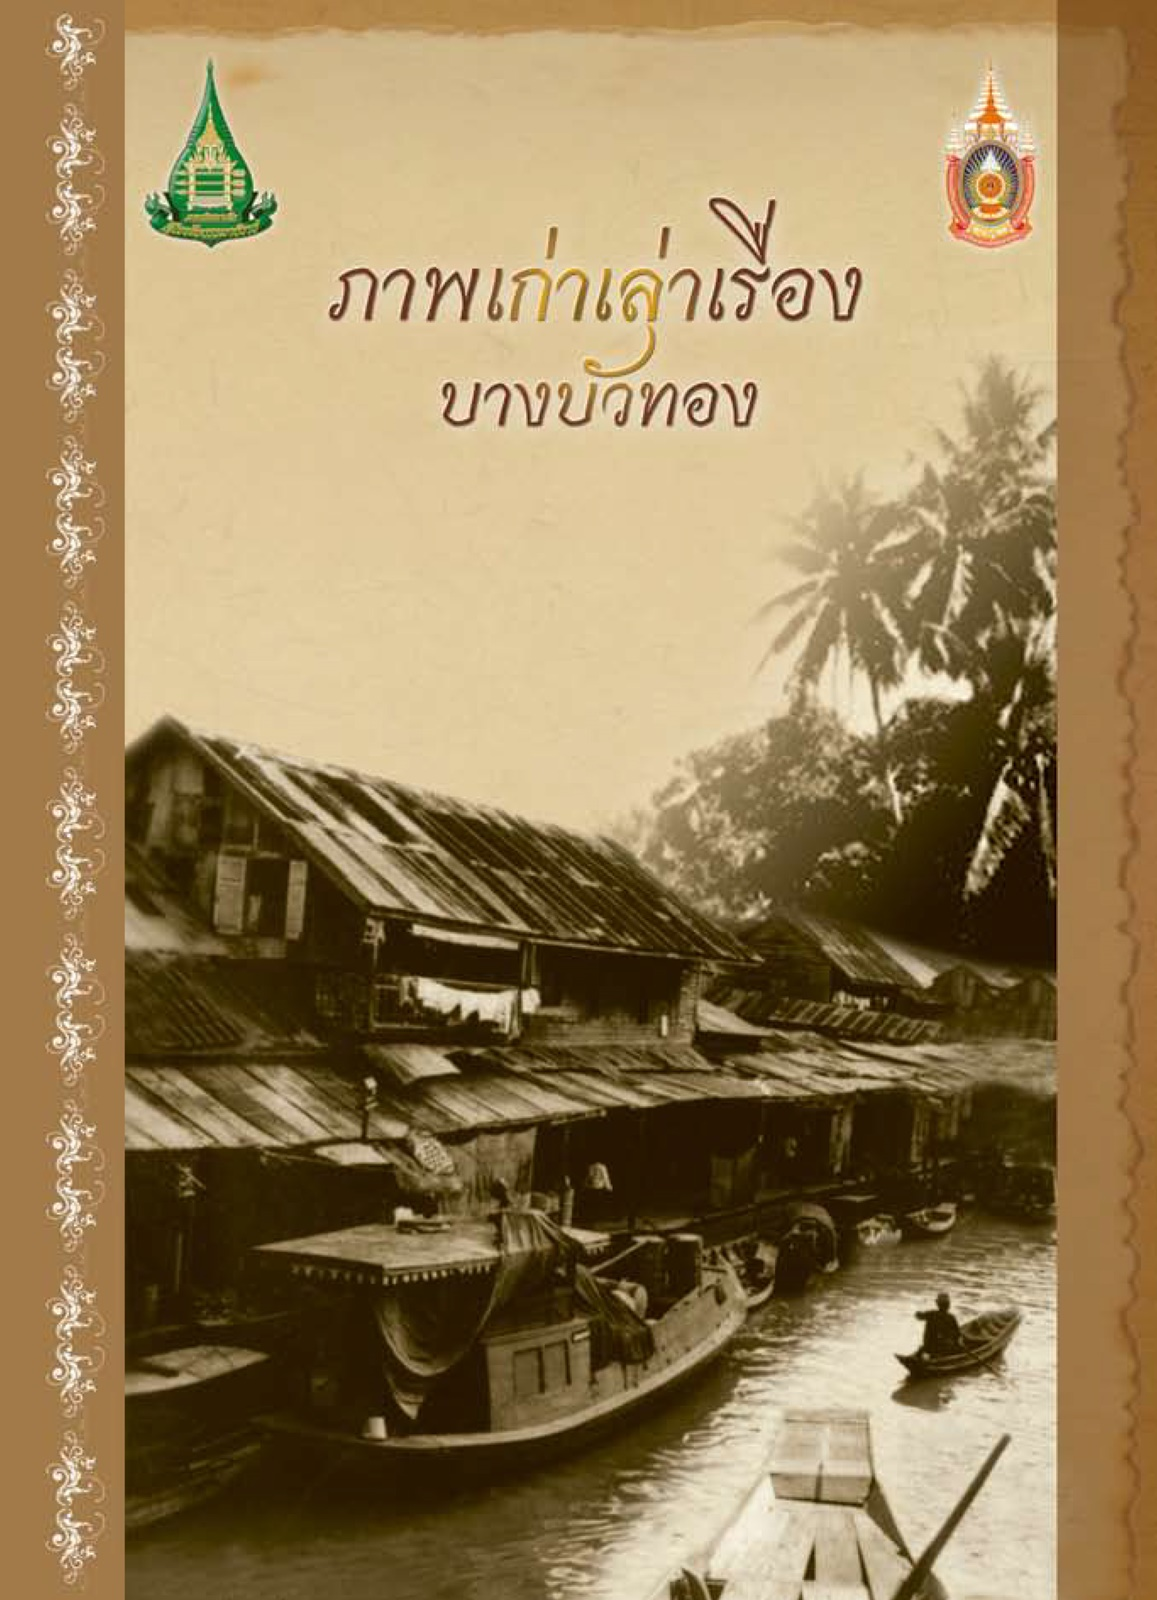 old-pictures-of-bang-bua-thong-cover